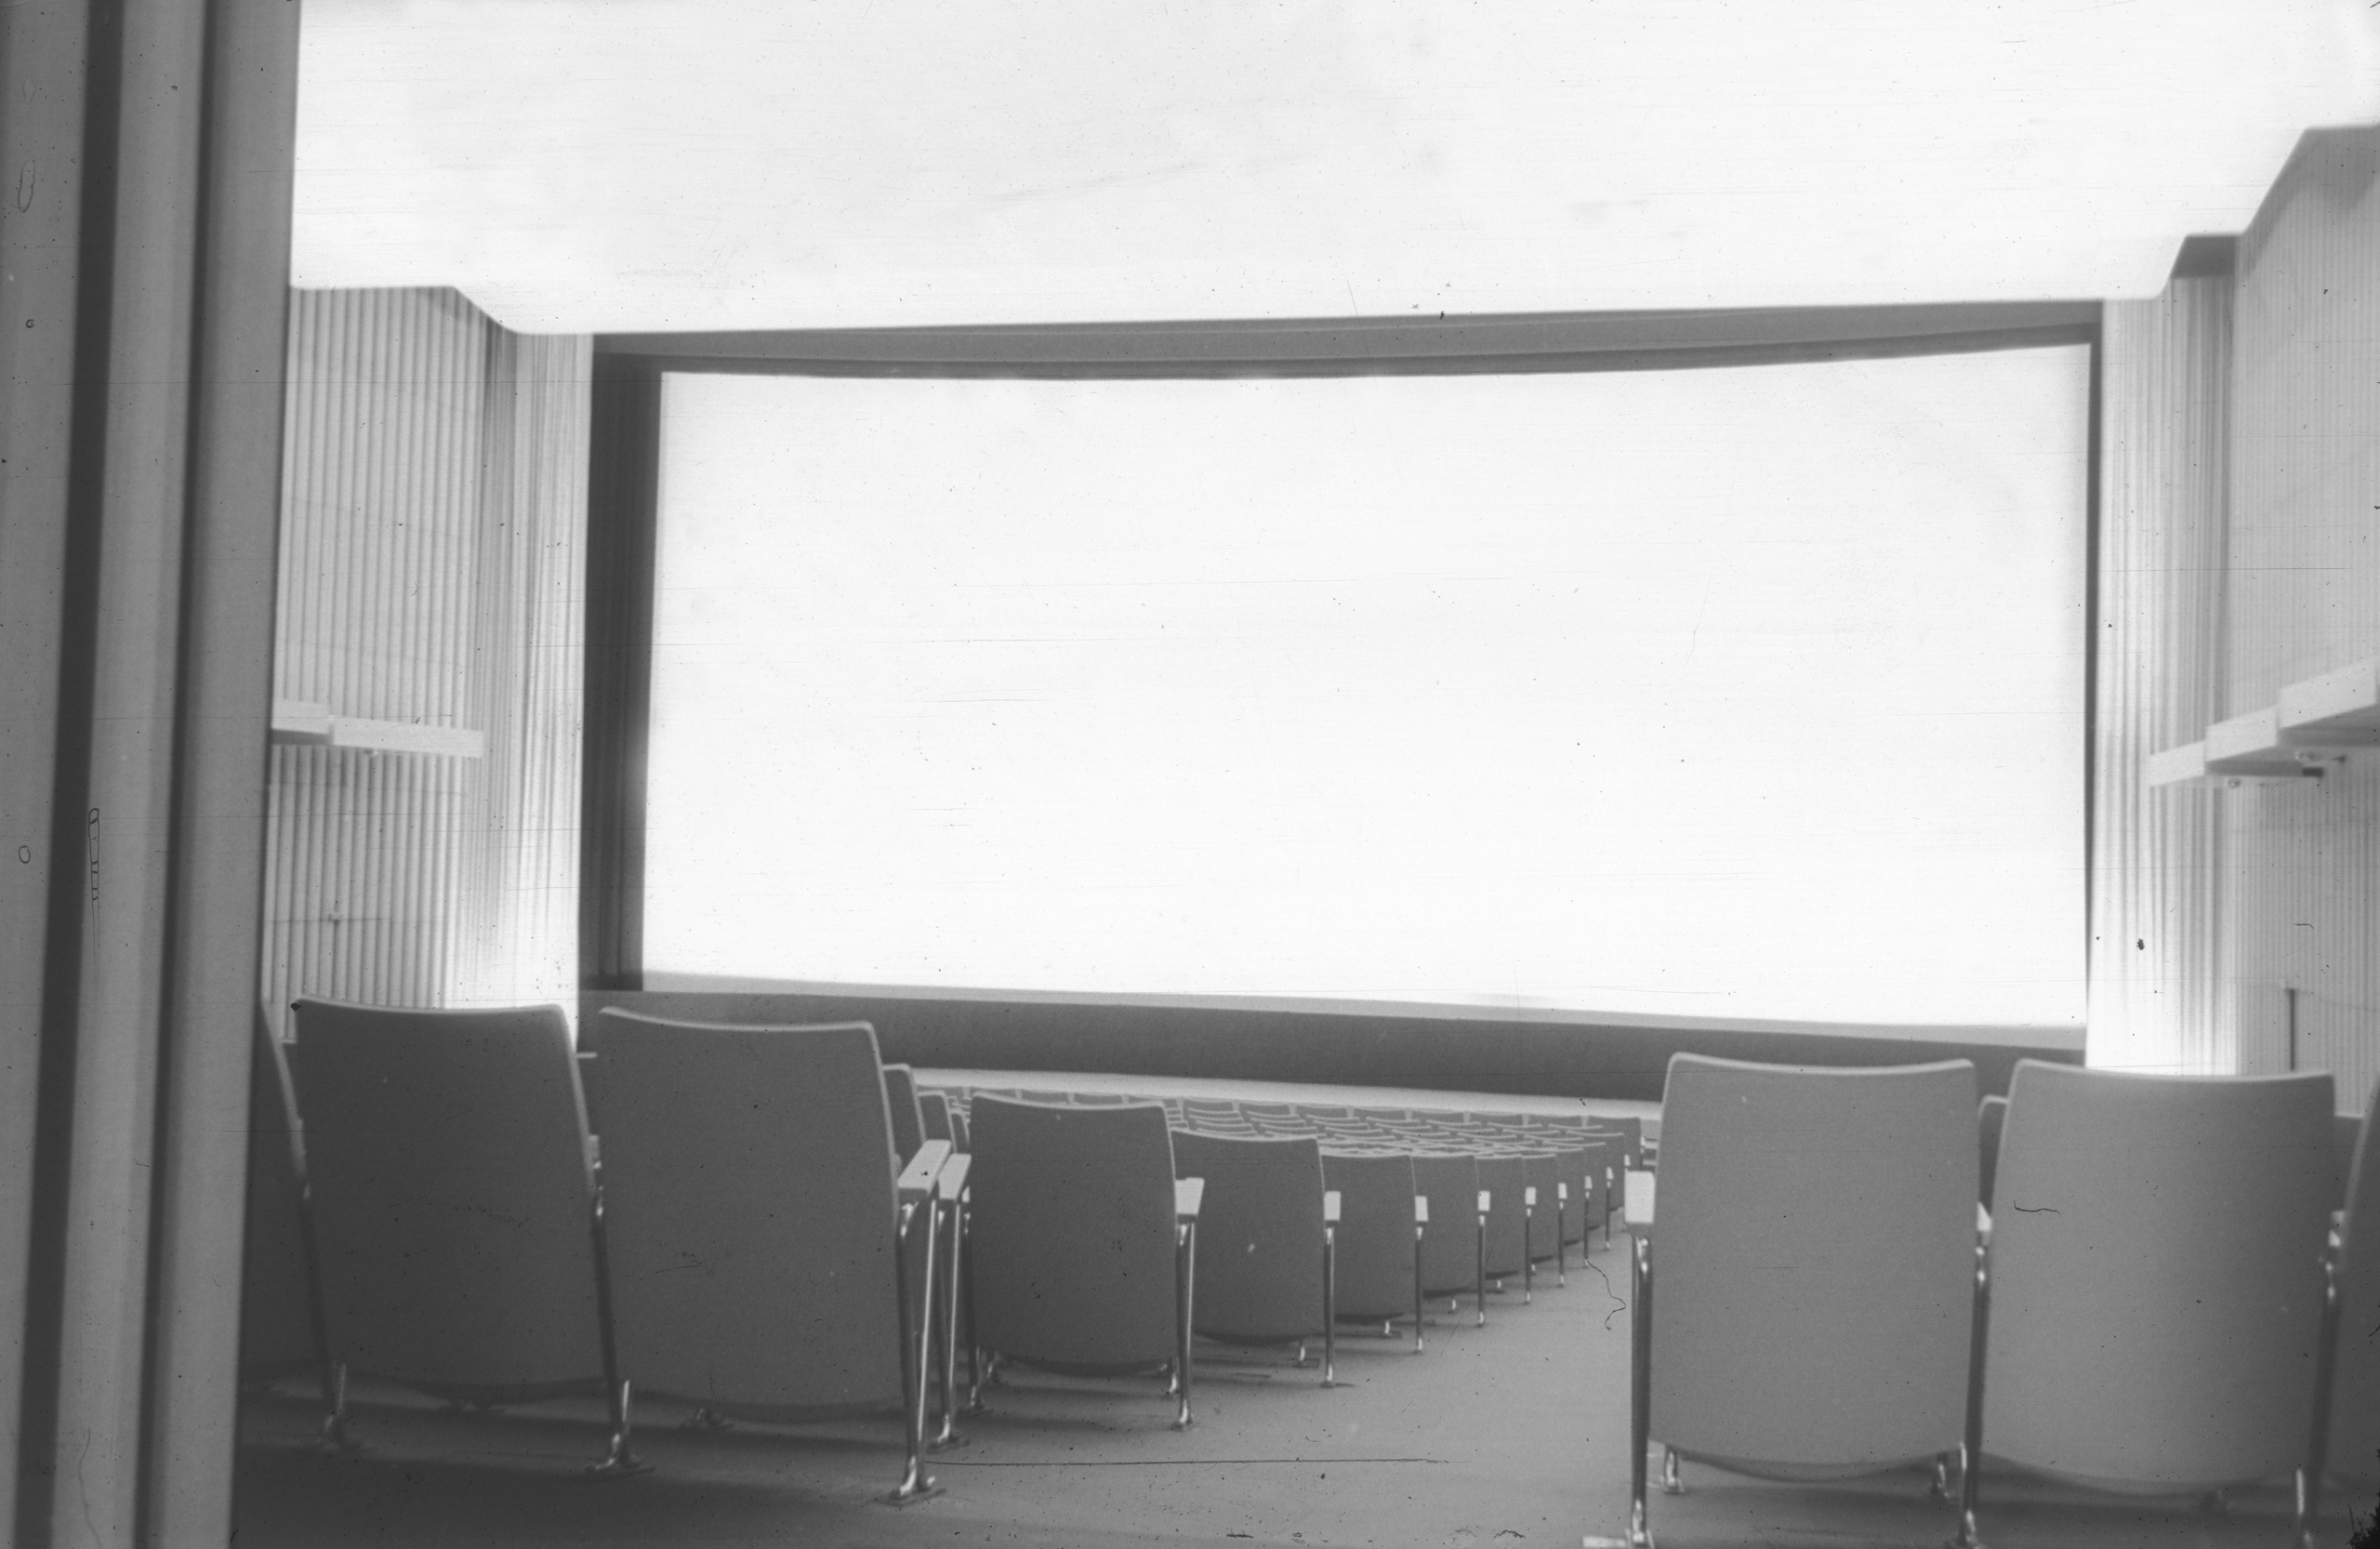 Black and white photo of the auditorium and the screen